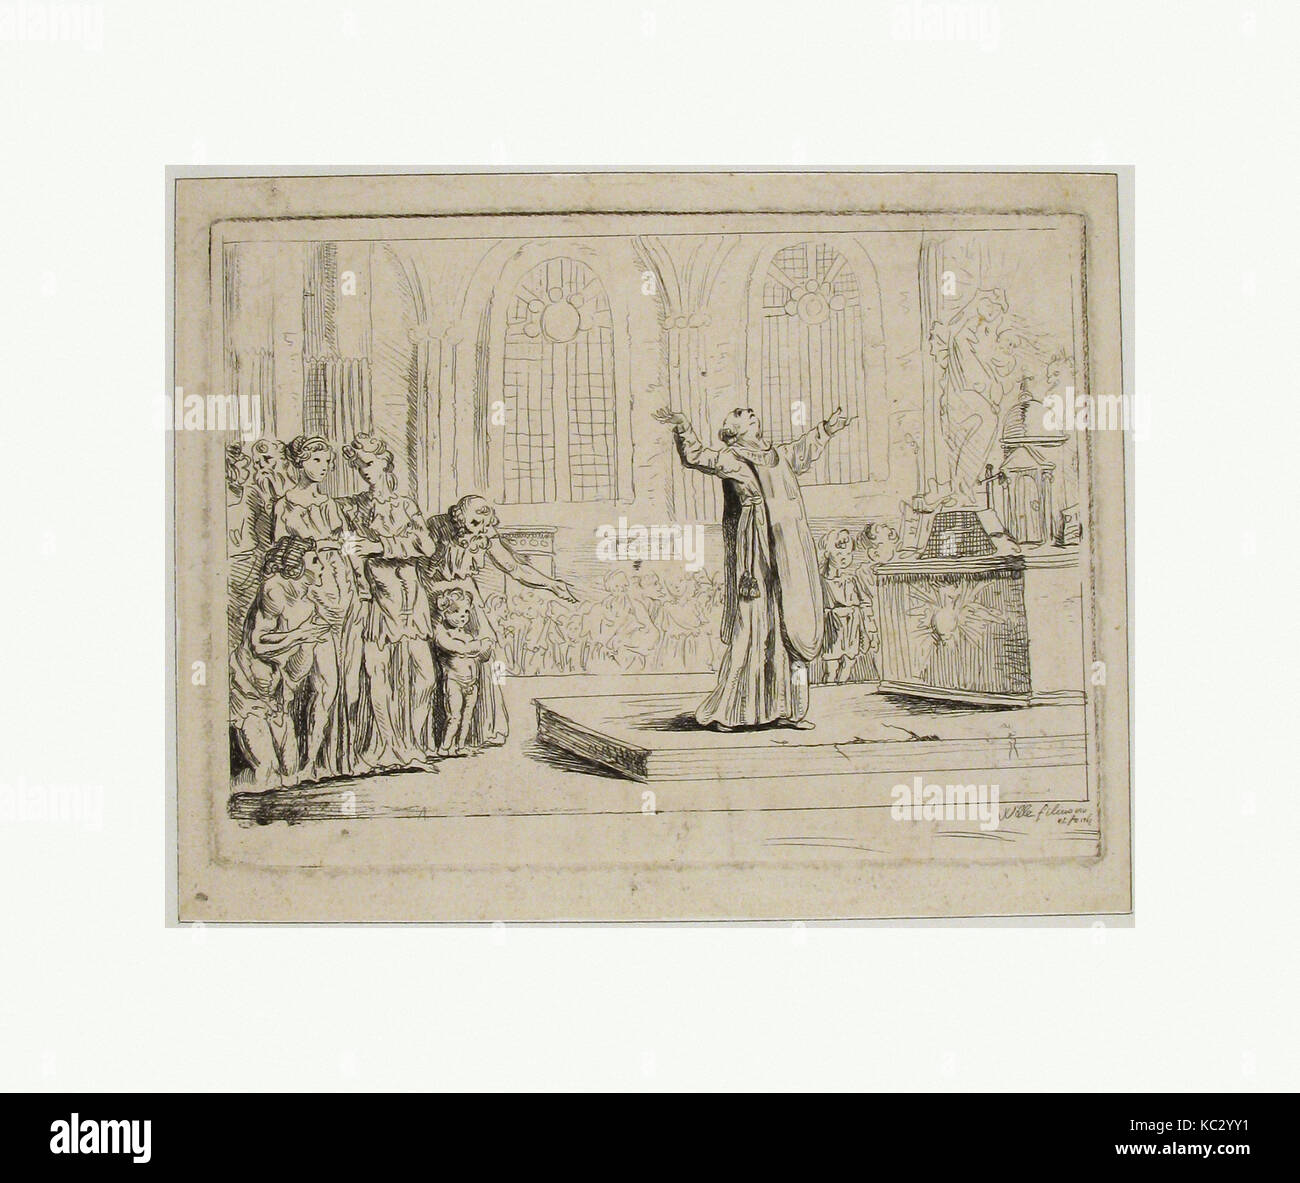 https://c8.alamy.com/comp/KC2YY1/priest-holding-a-service-before-an-altar-pierre-alexandre-wille-nd-KC2YY1.jpg